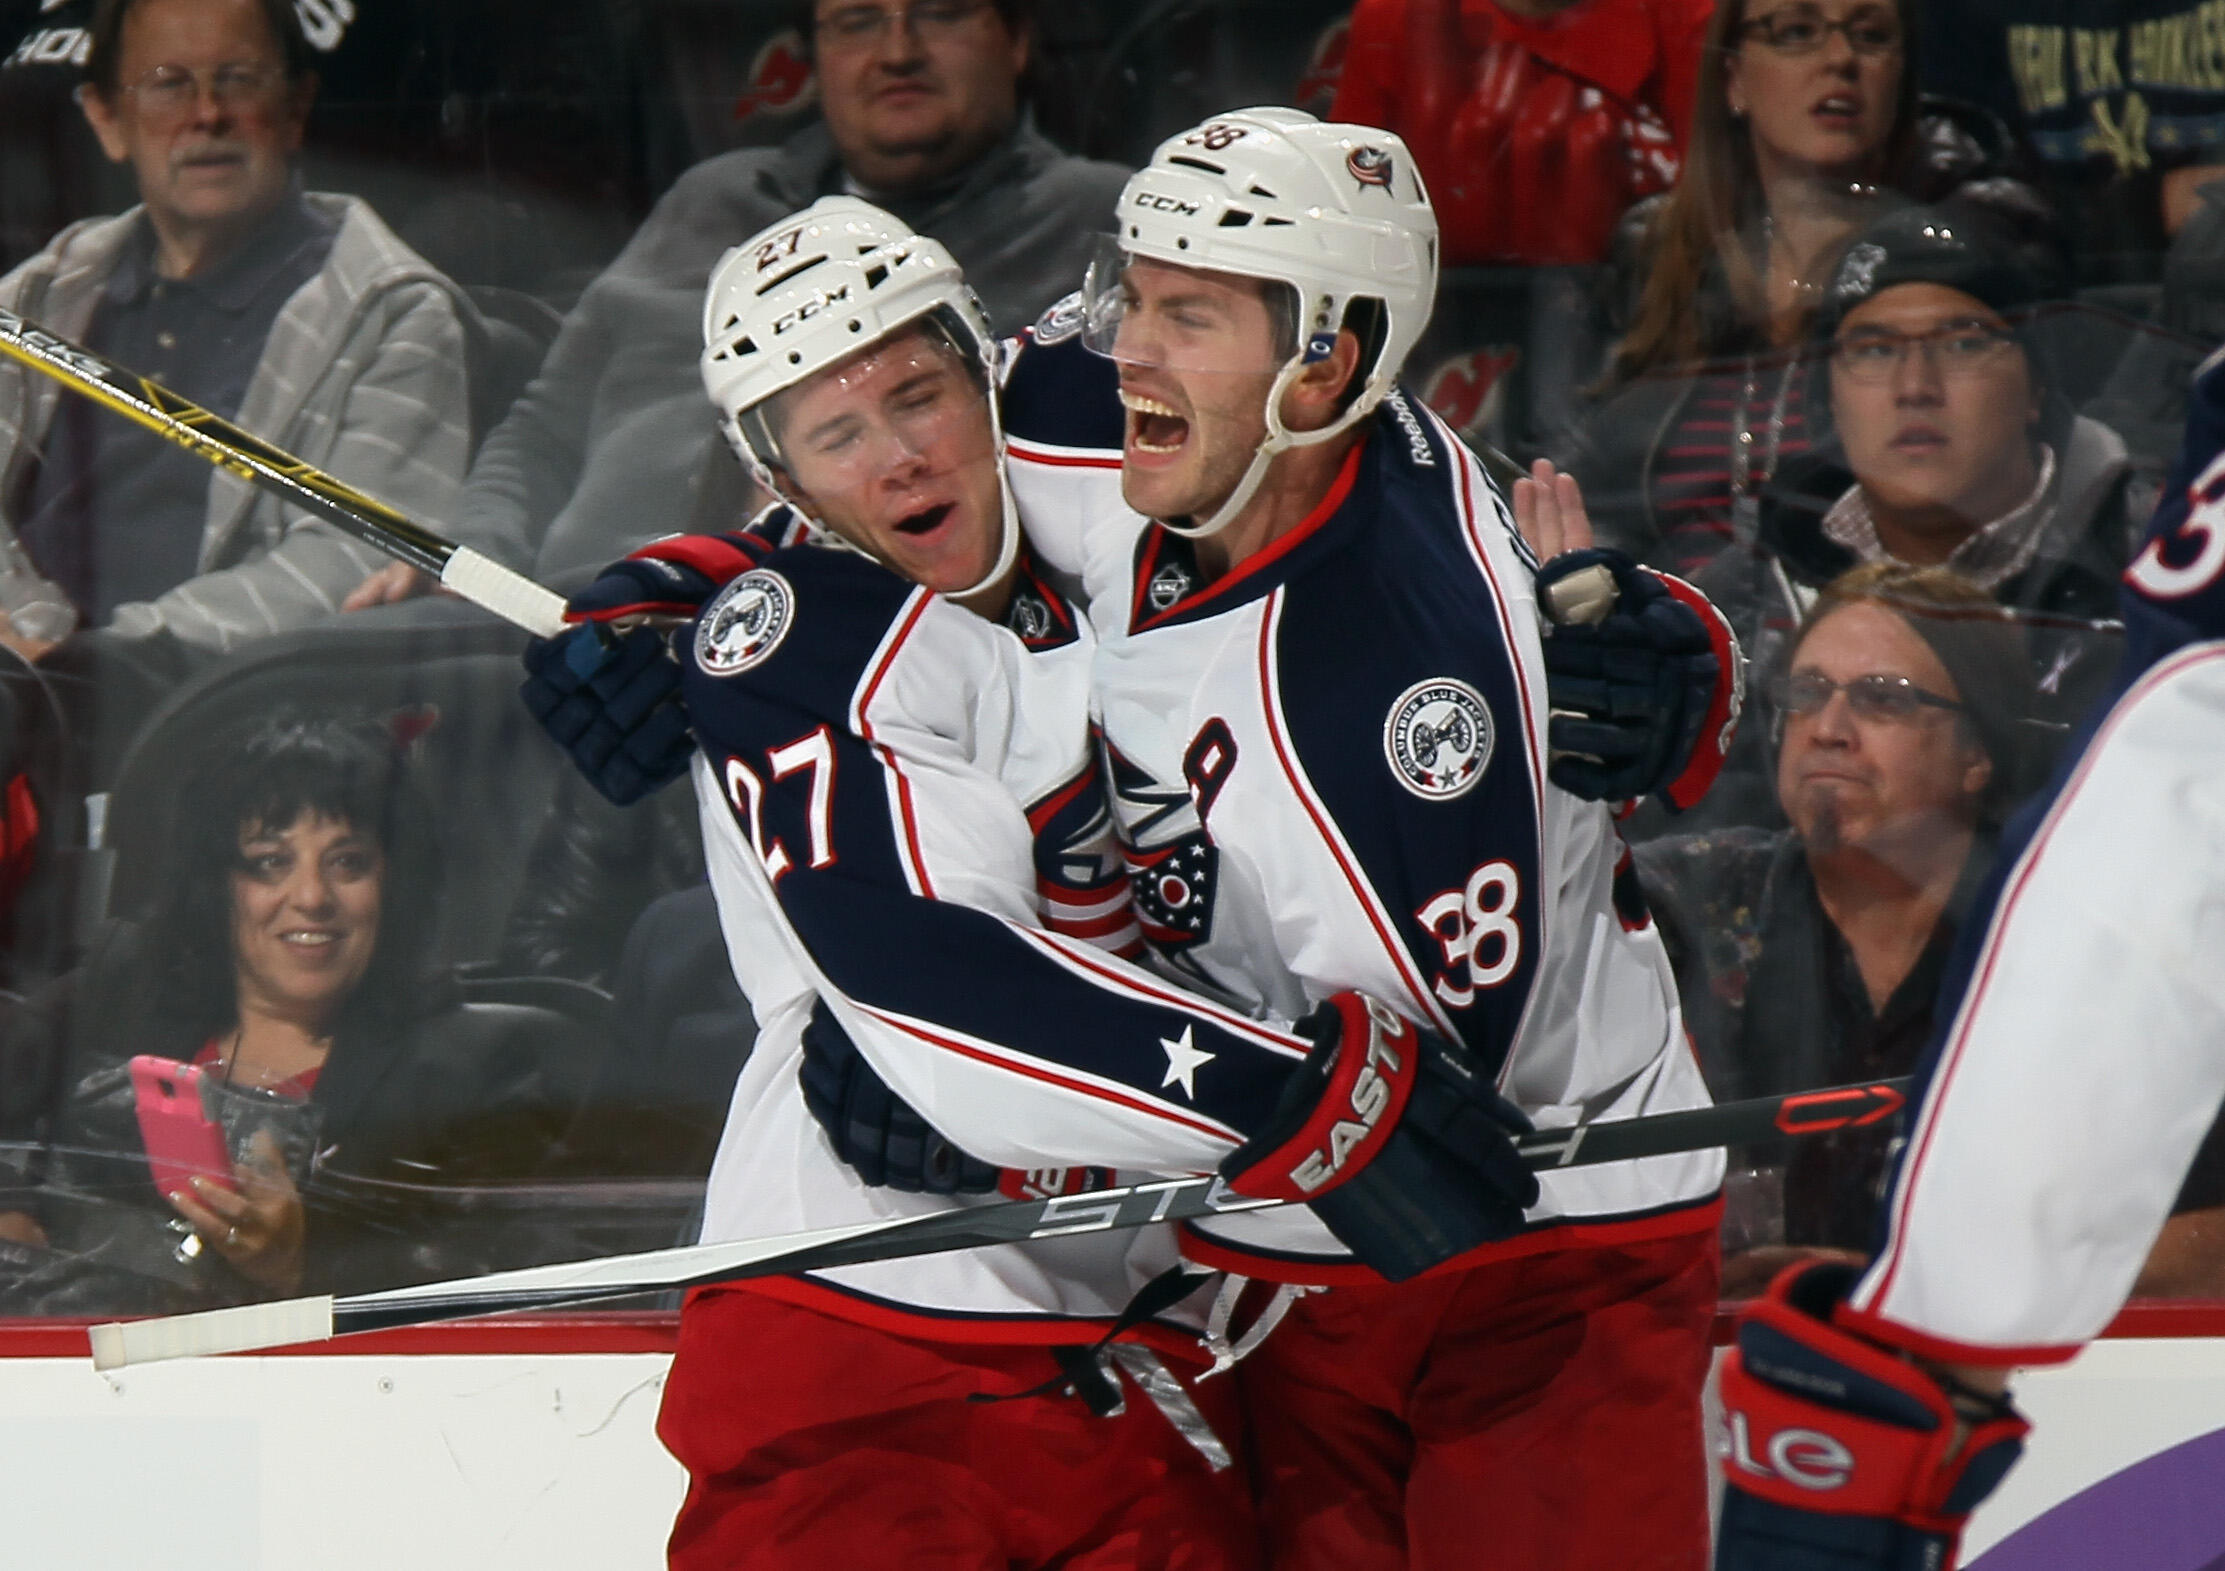 The Blue Jackets did something in New Jersey only two other NHL teams have ever done